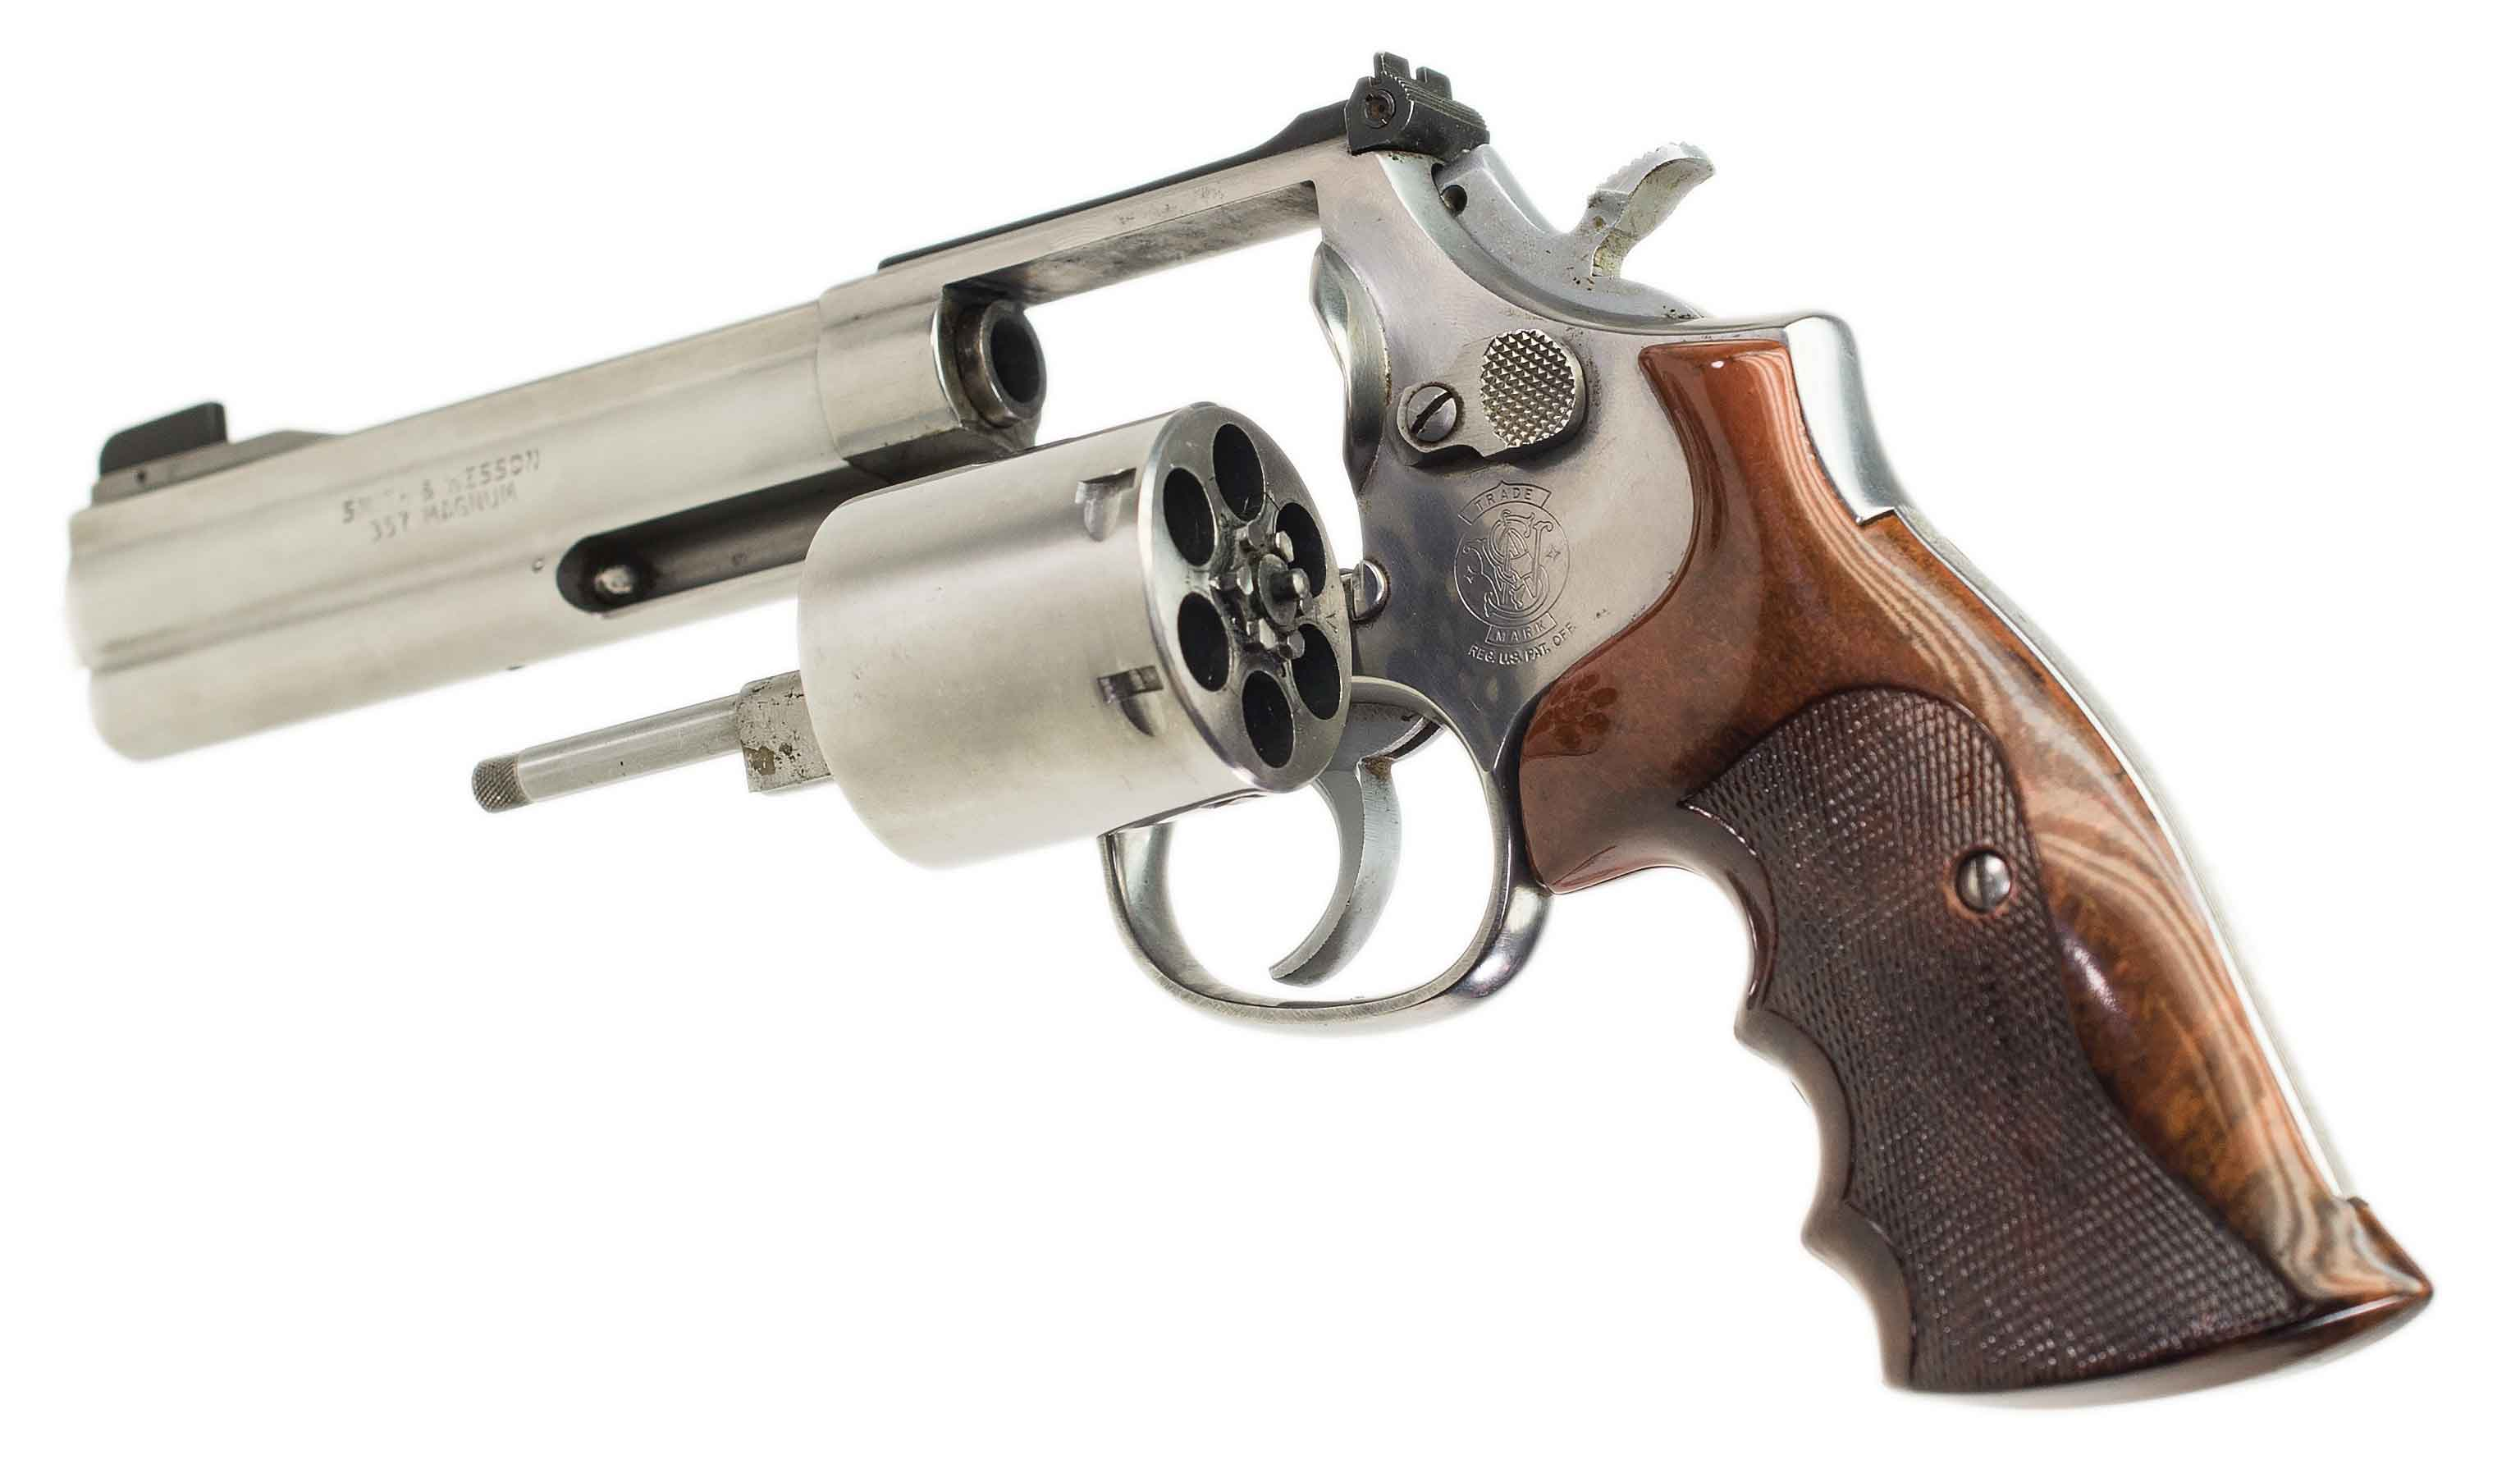 SMITH AND WESSON MODEL 686 NATIONAL MATCH (Auction ID: 10222379, End ...